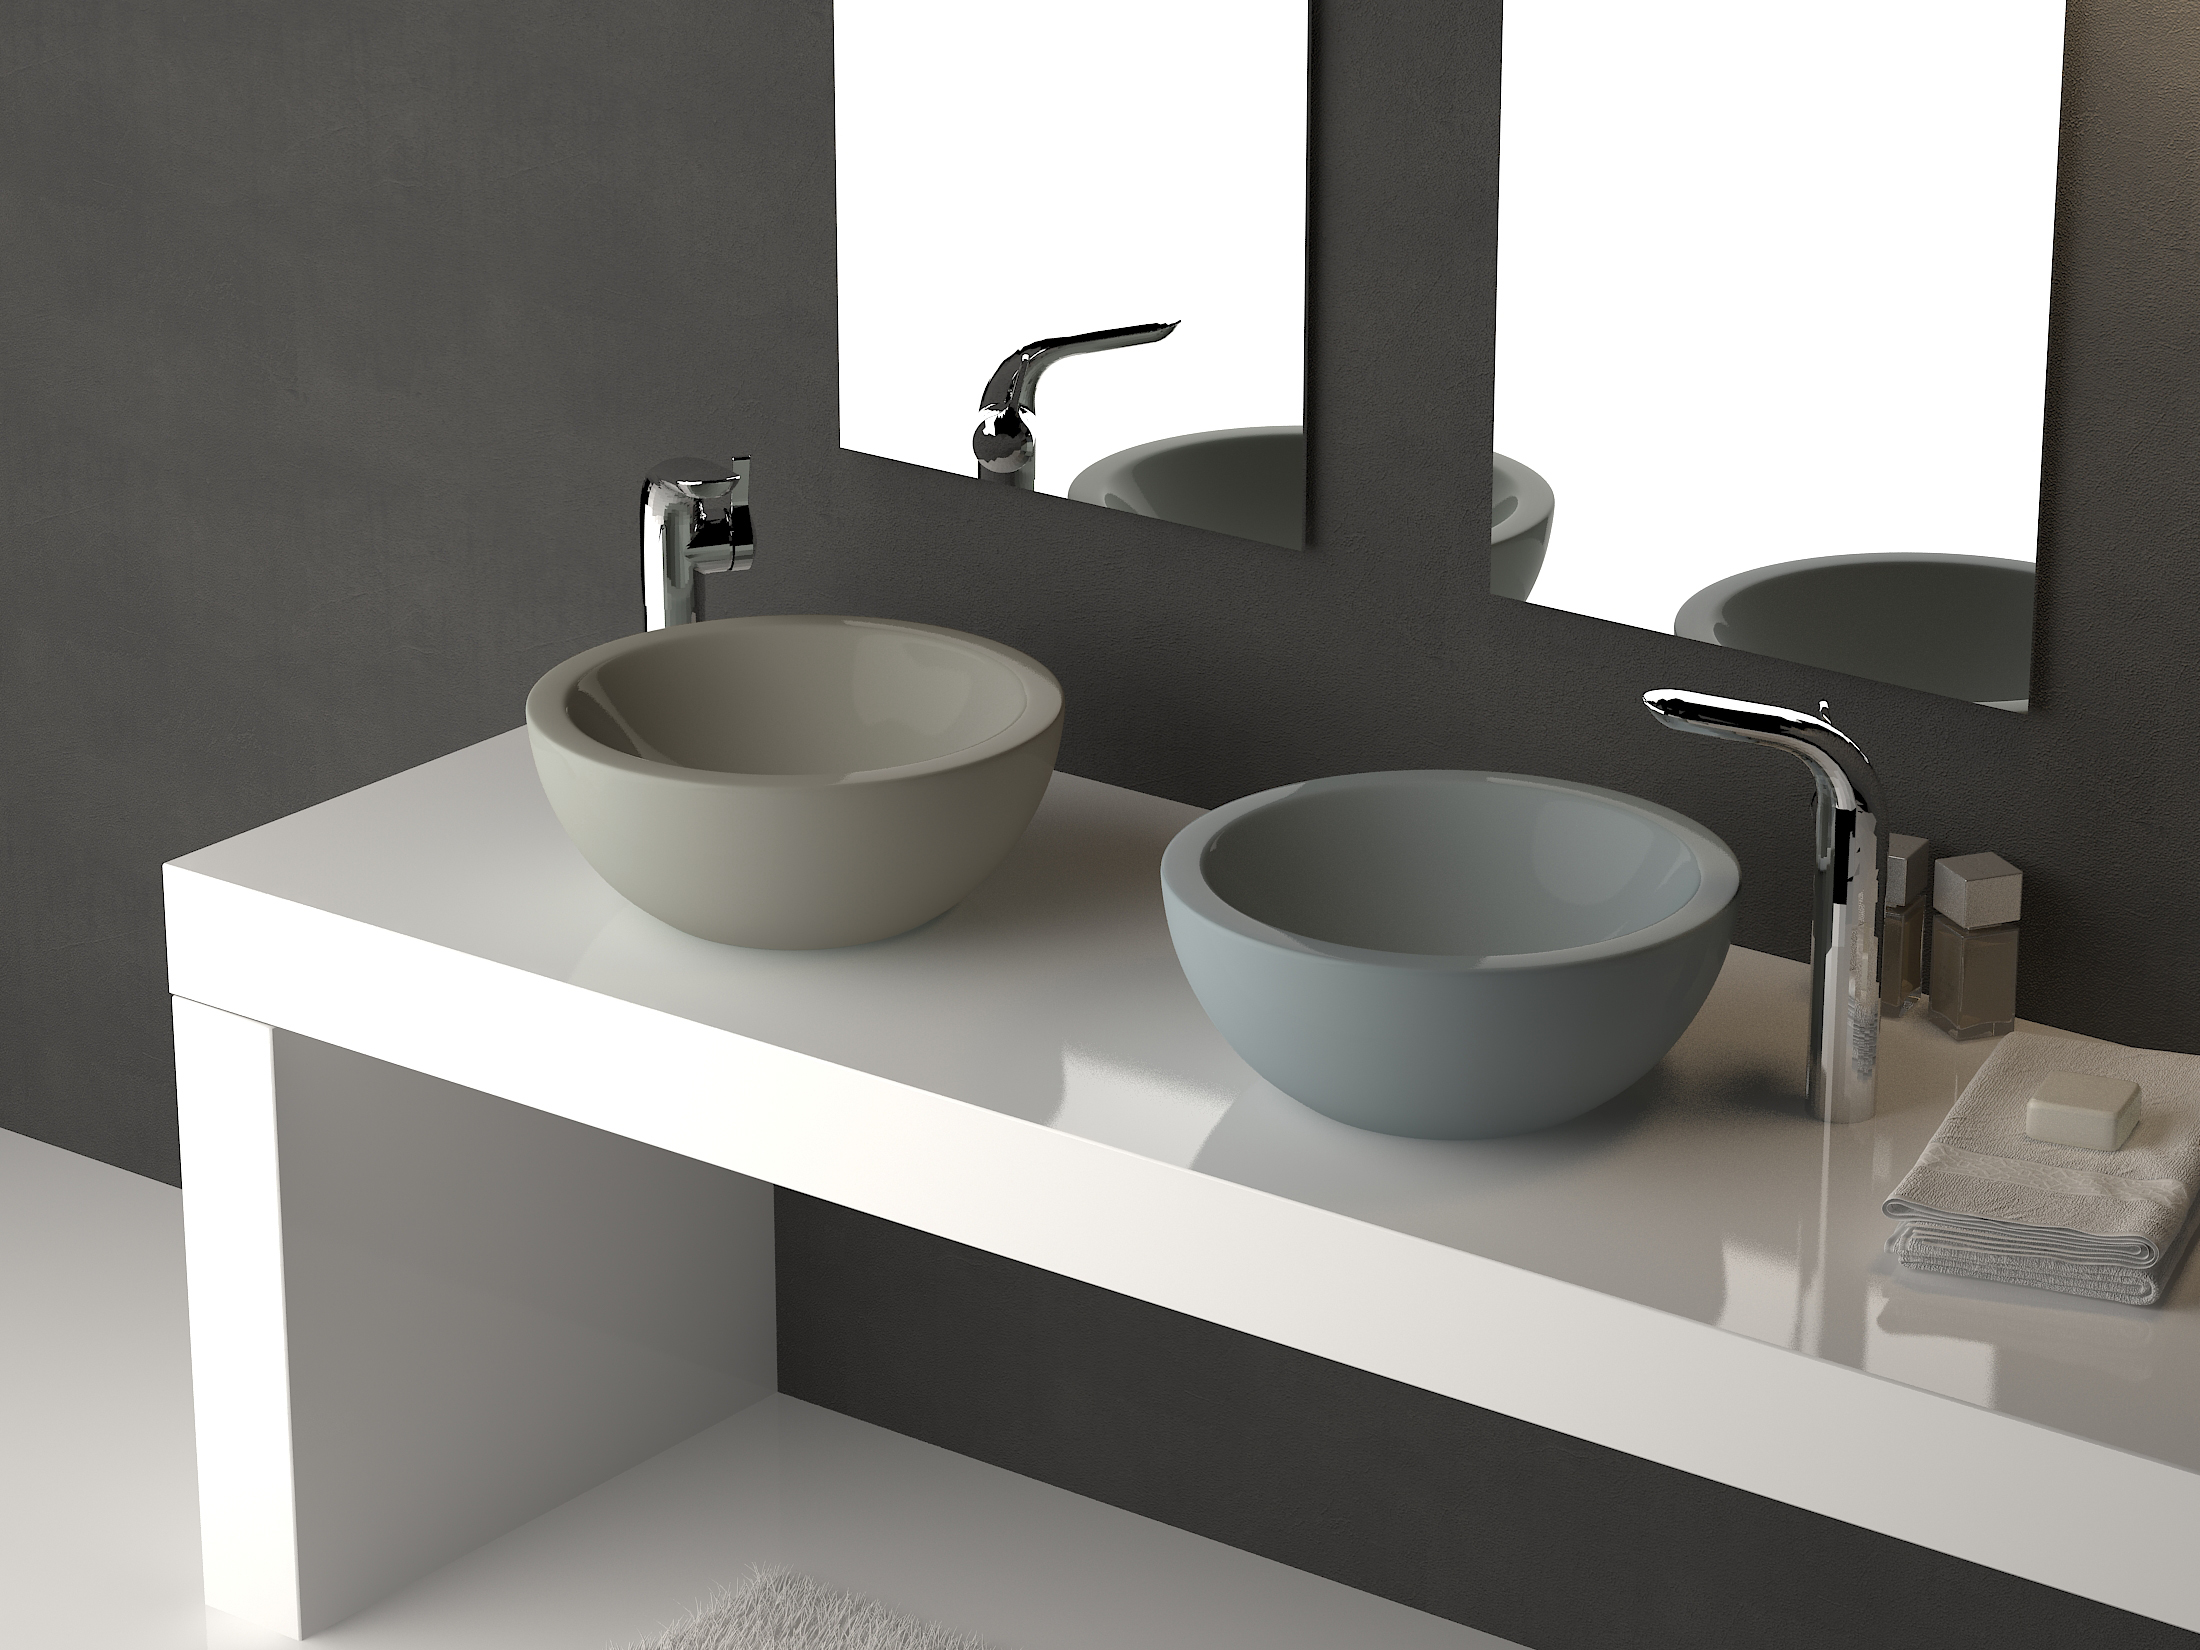 sanitary ware dubai - Bathroom Accessories Dubai